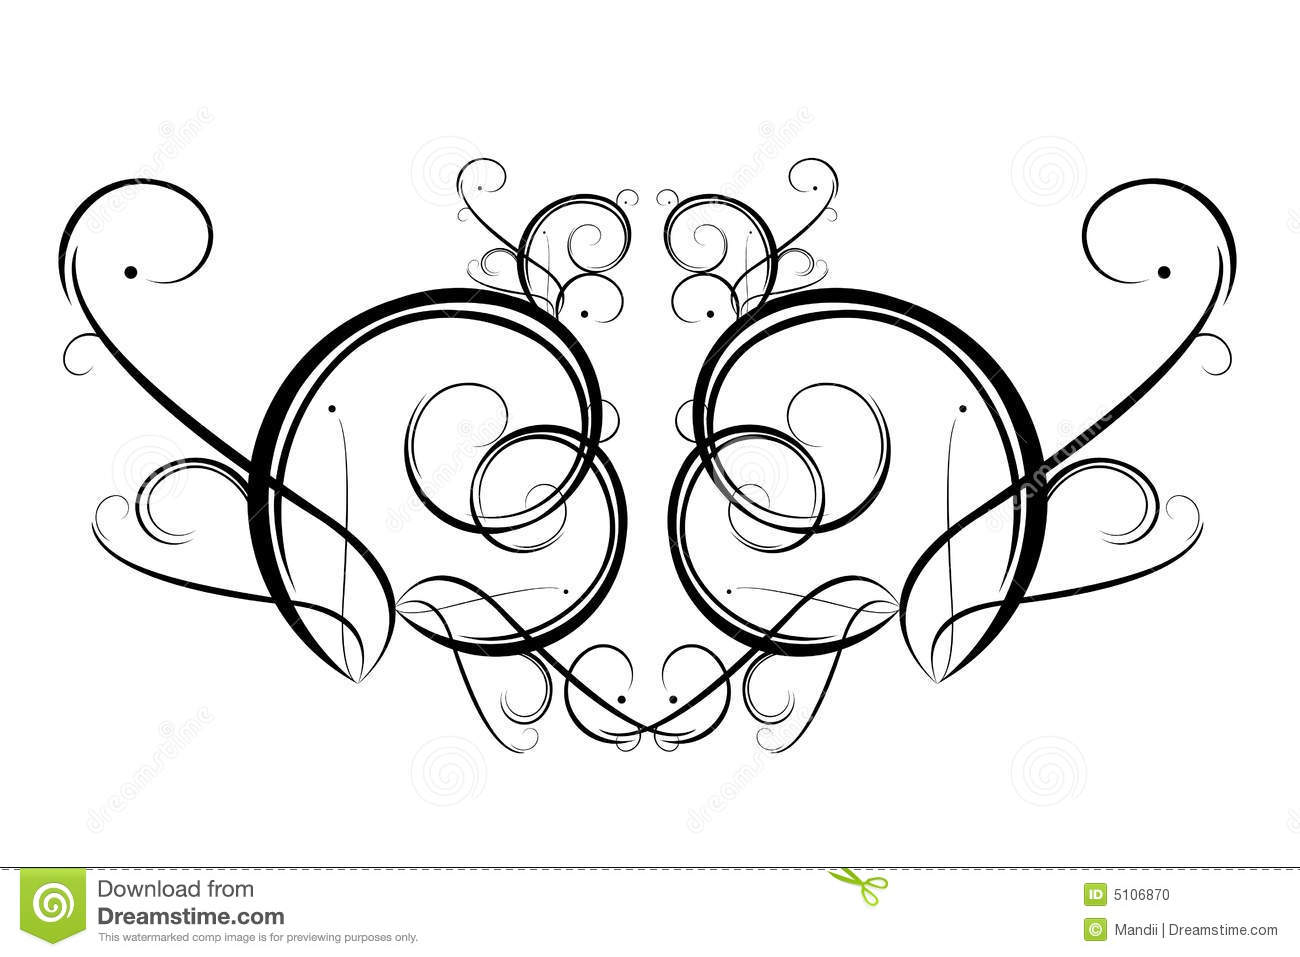 Drawing Lines With Core Graphics : Line art stock illustration of symmetry